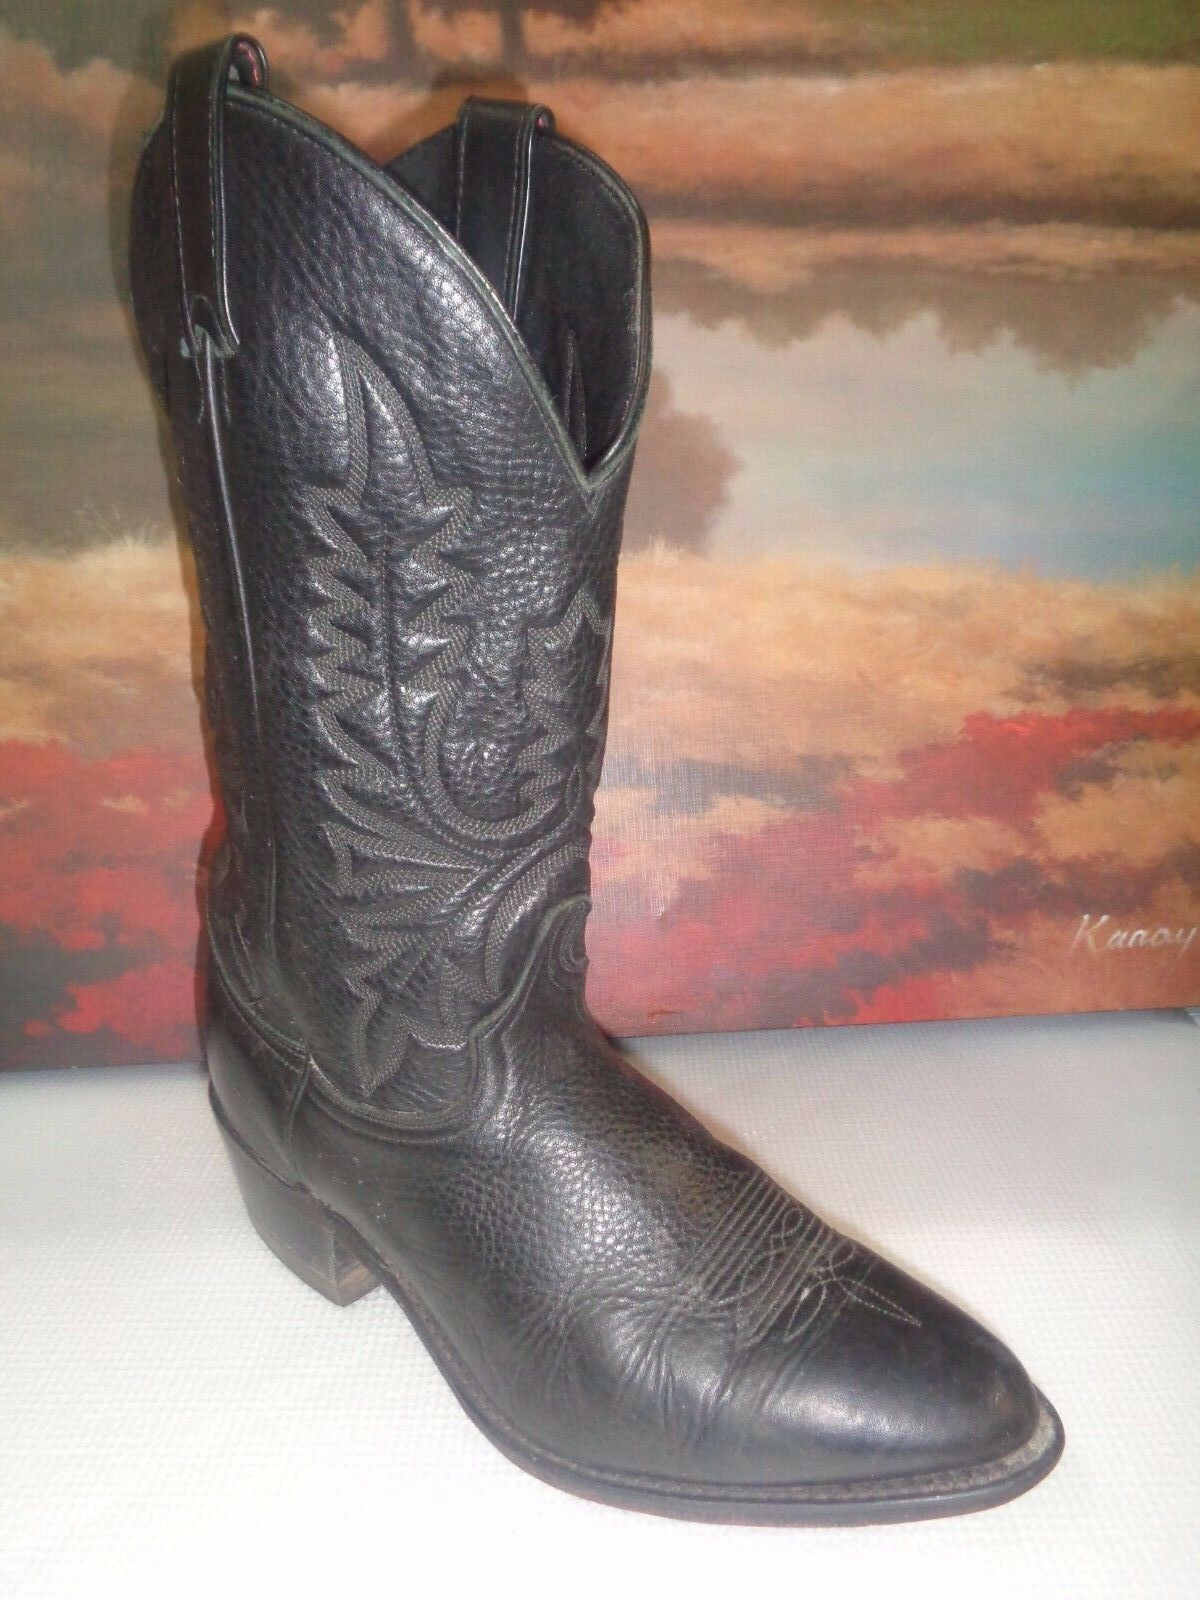 Amazonas Black Leather Pull-On Western Cowboy Boots Men's U.S. 10EE